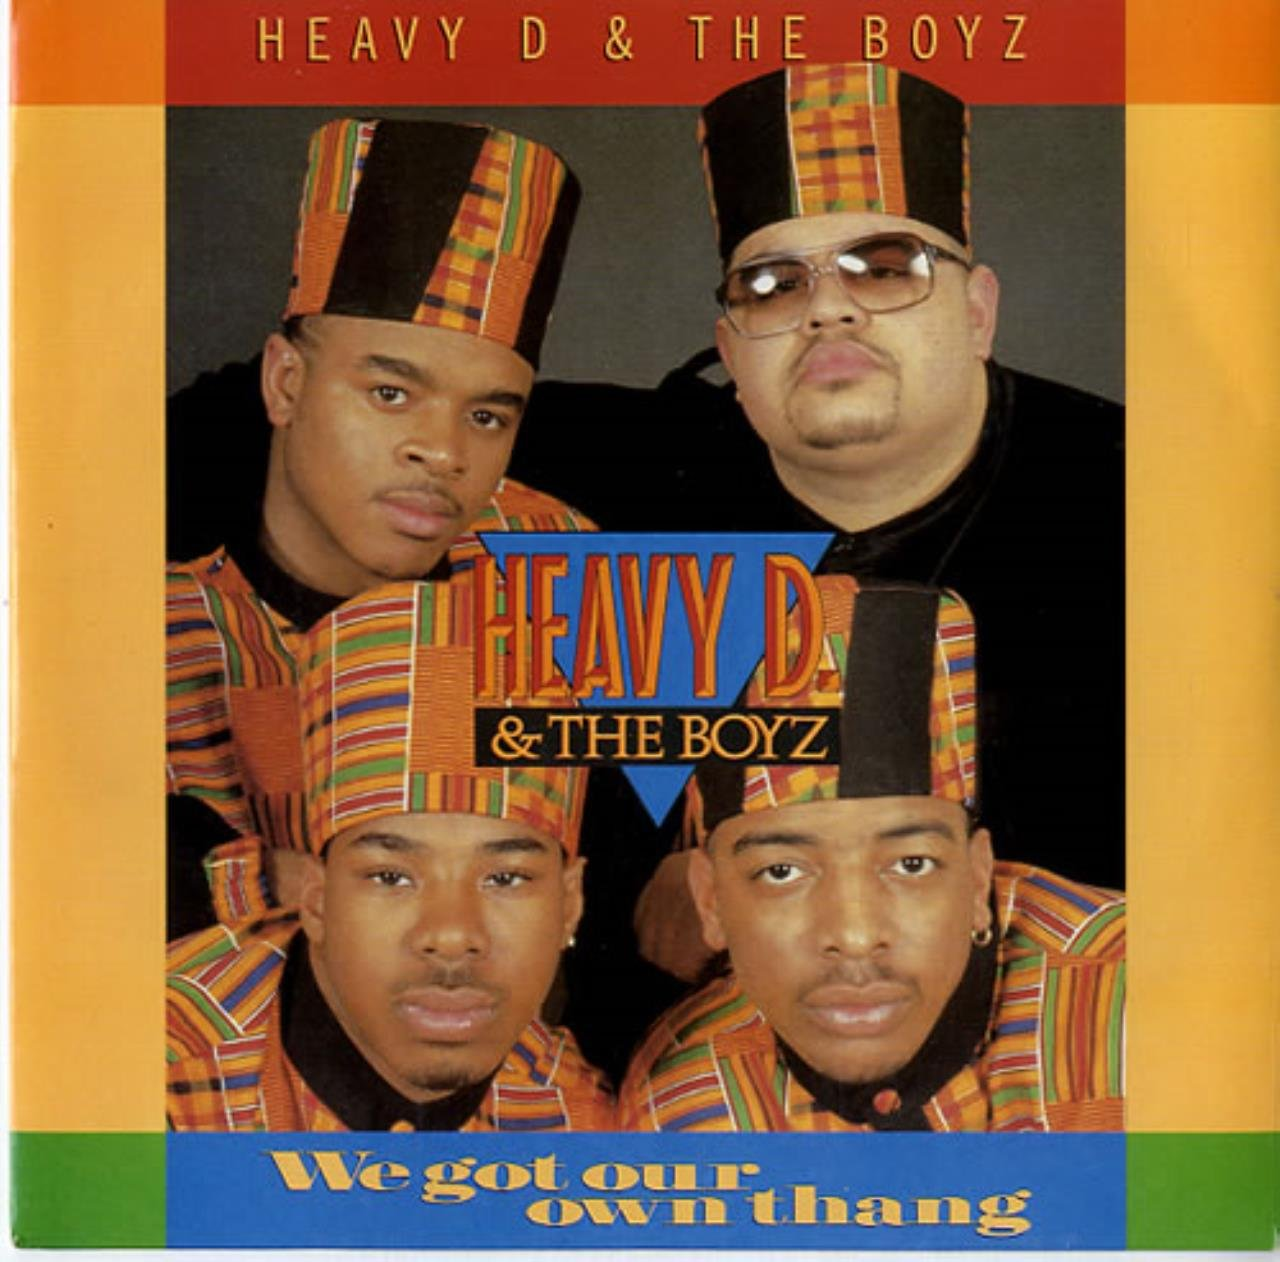 heavy d and the boyz we got our own thang amazon com music we got our own thang